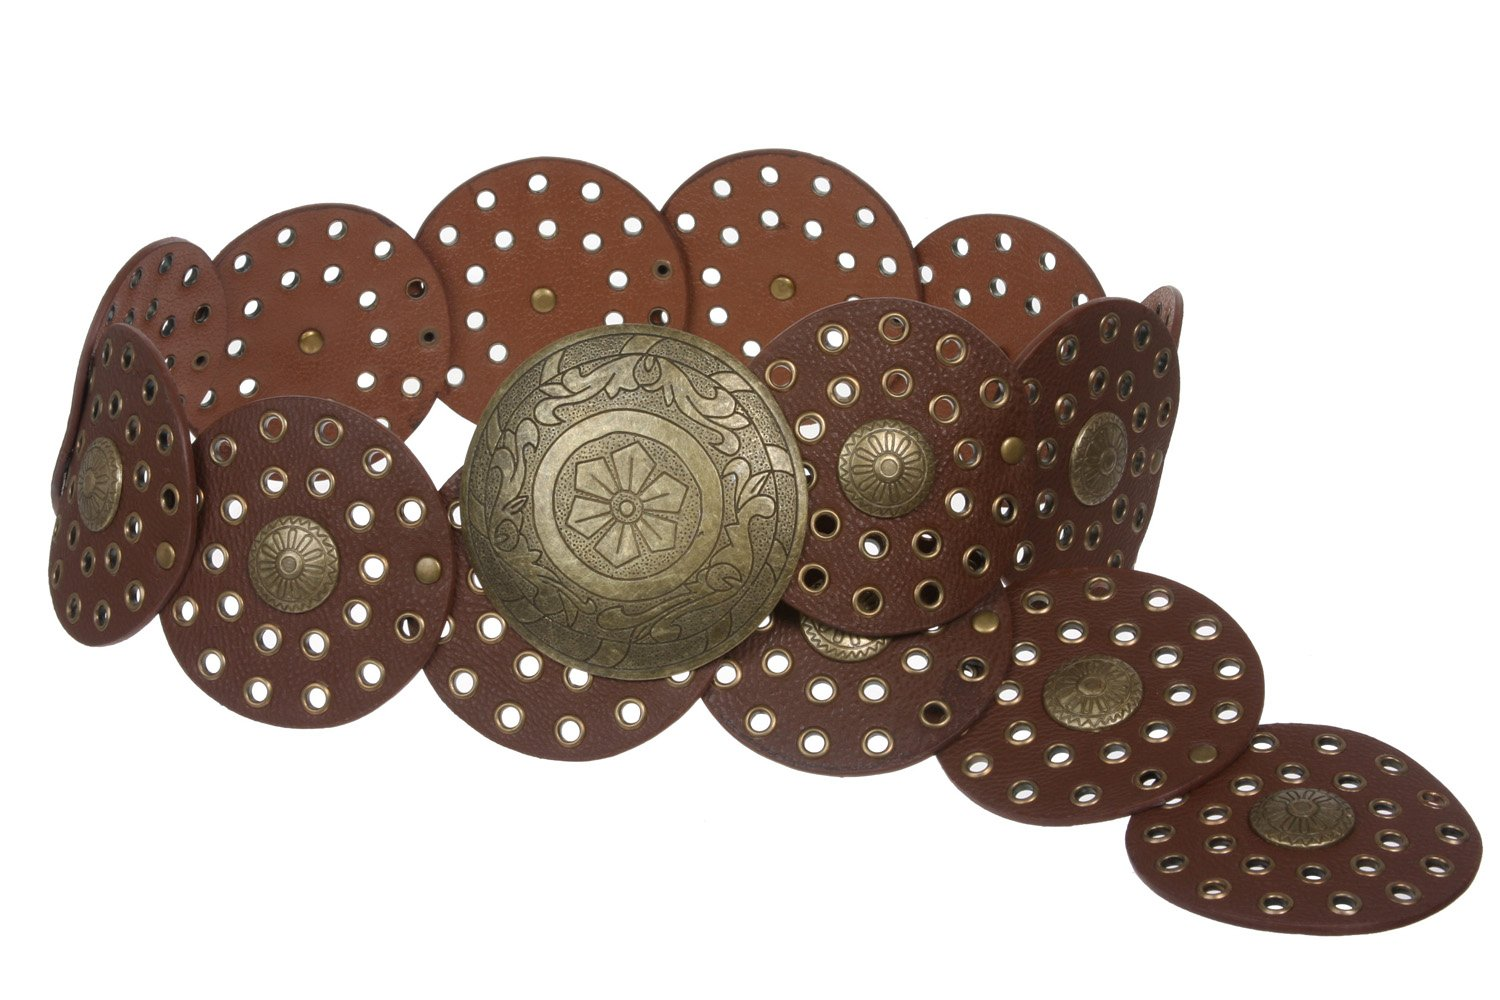 3 1/2'' (90 mm) Wide Ladies Wide Boho Disc Concho Leather Belt, Tan | XL - 48 END-TO-END by beltiscool